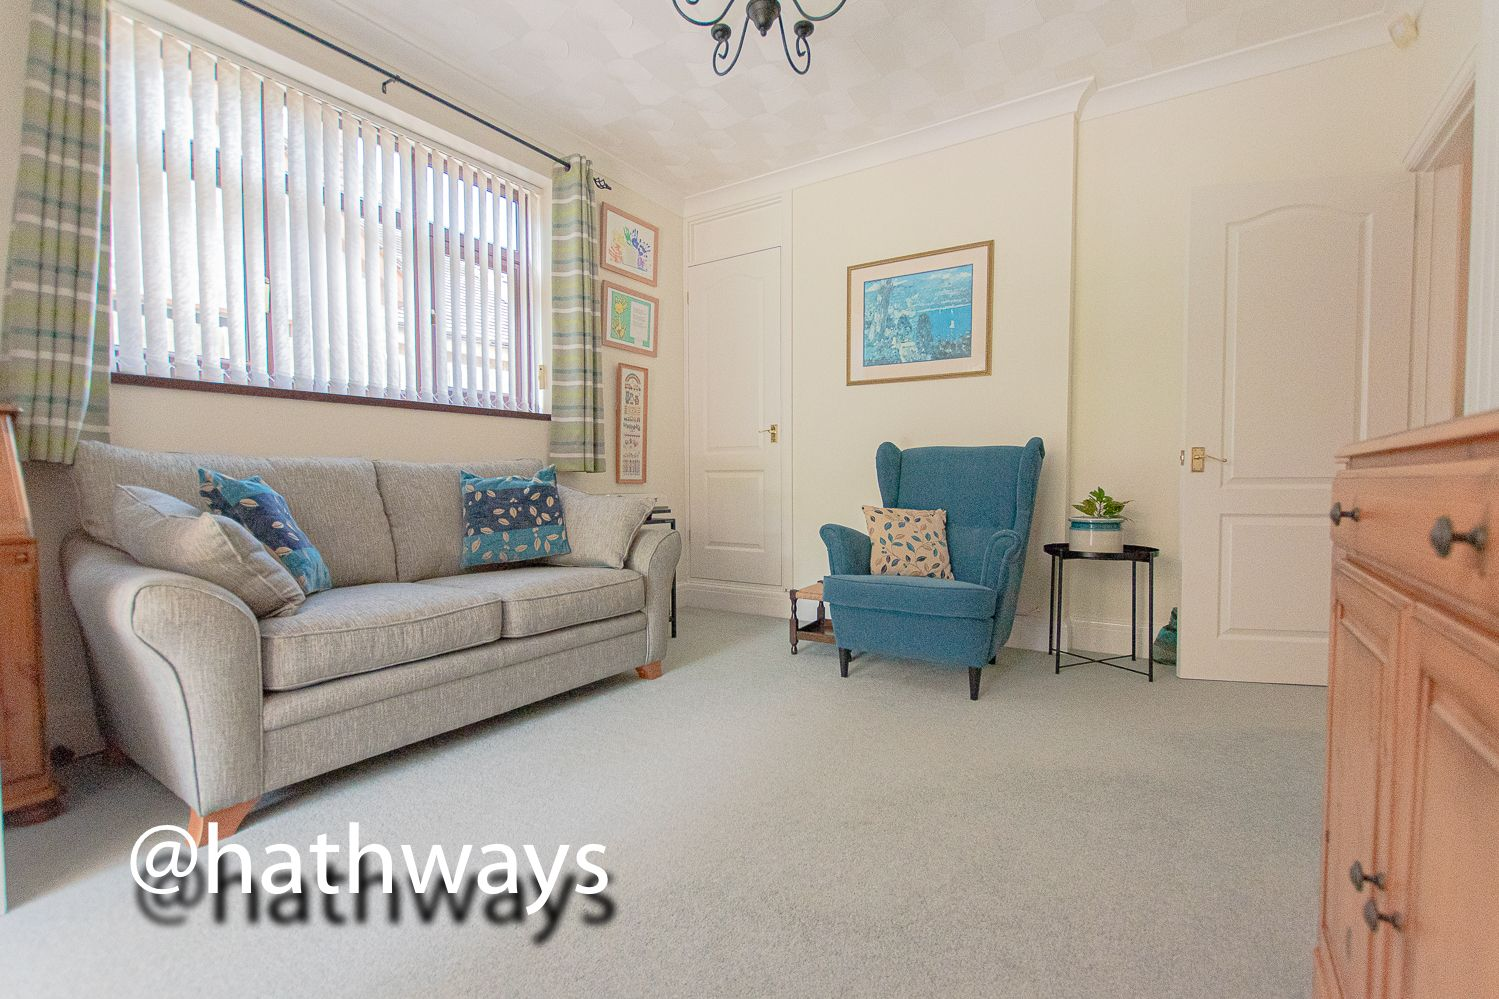 4 bed house for sale in Ashford Close South  - Property Image 10